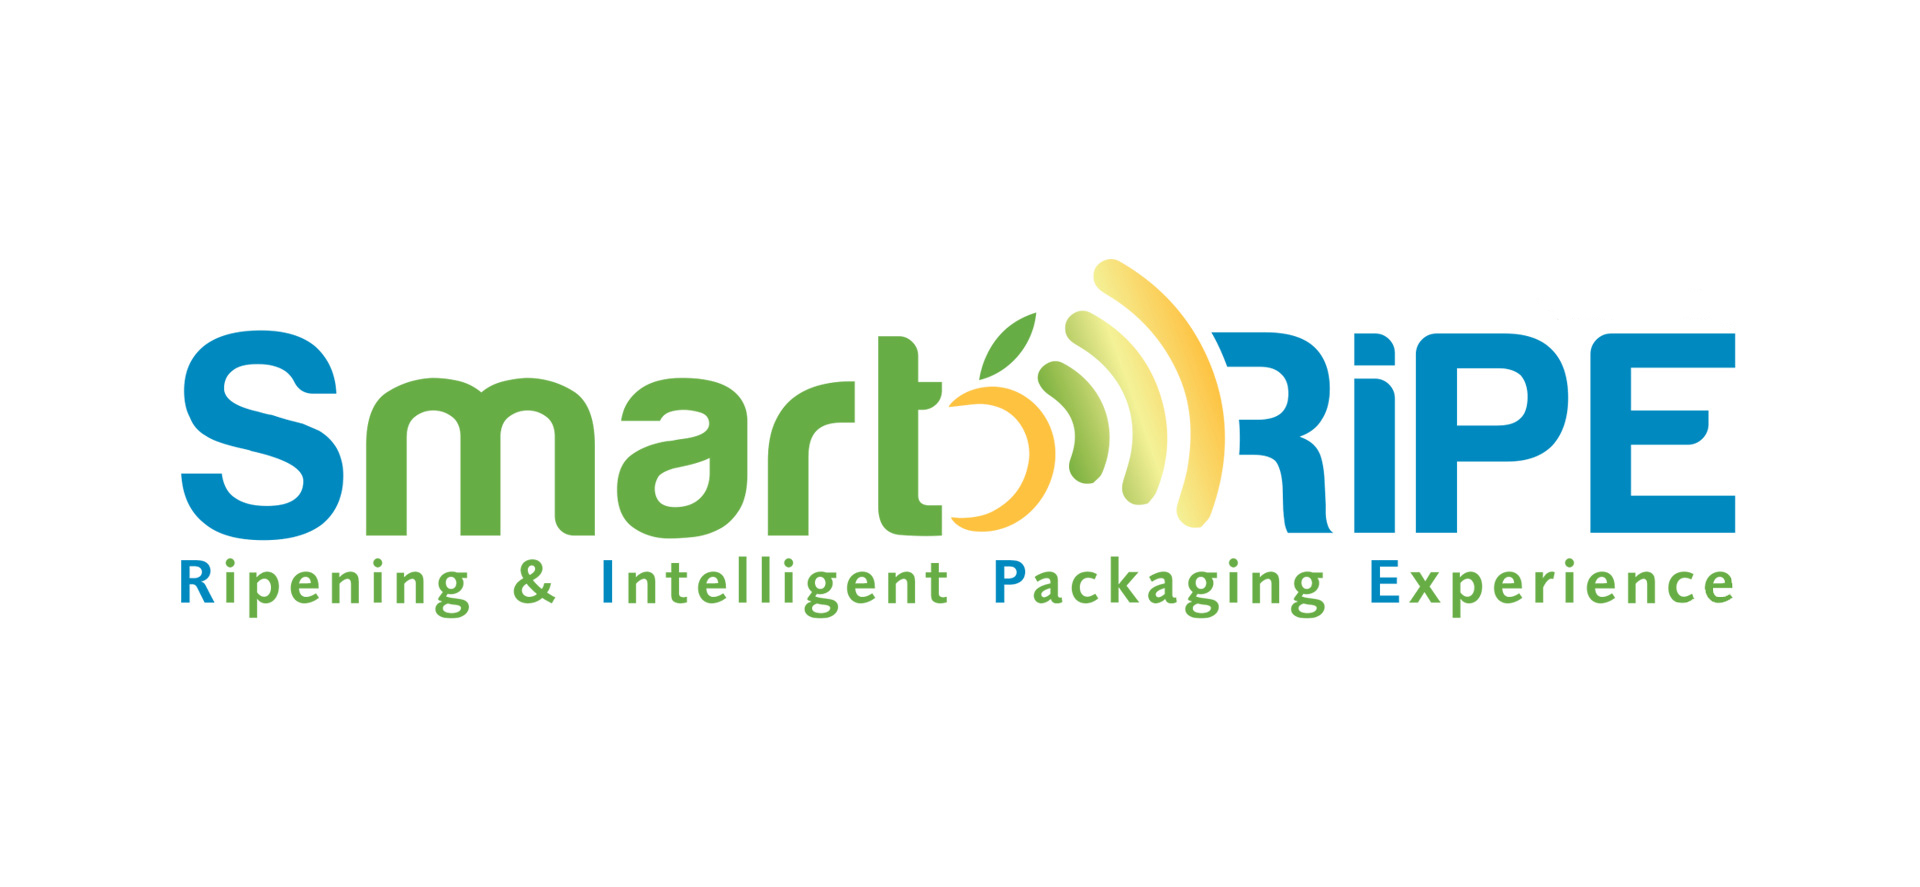 SmartRiPE®: The intelligent packaging recognizes the ripening stages of tropical fruits and in-teracts with consumers